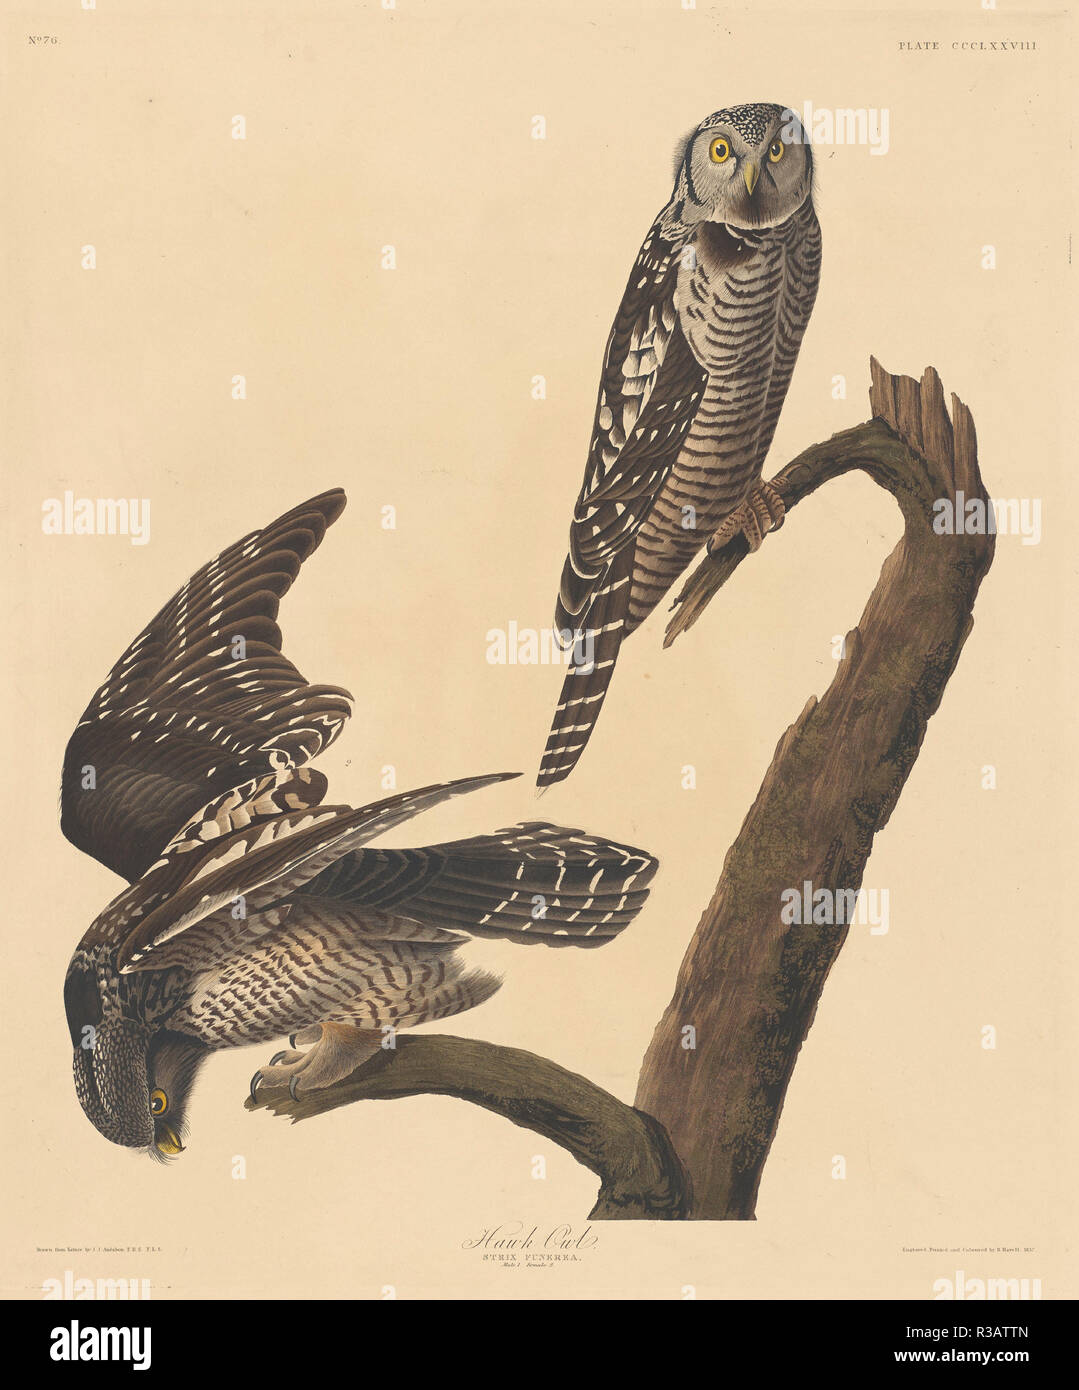 Hawk Owl. Stand: 1837. Medium: Handcolorierte Radierung und Aquatinta auf Whatman Papier. Museum: Nationalgalerie, Washington DC. Autor: Robert Havell nach John James Audubon. AUDUBON, John James. Stockbild